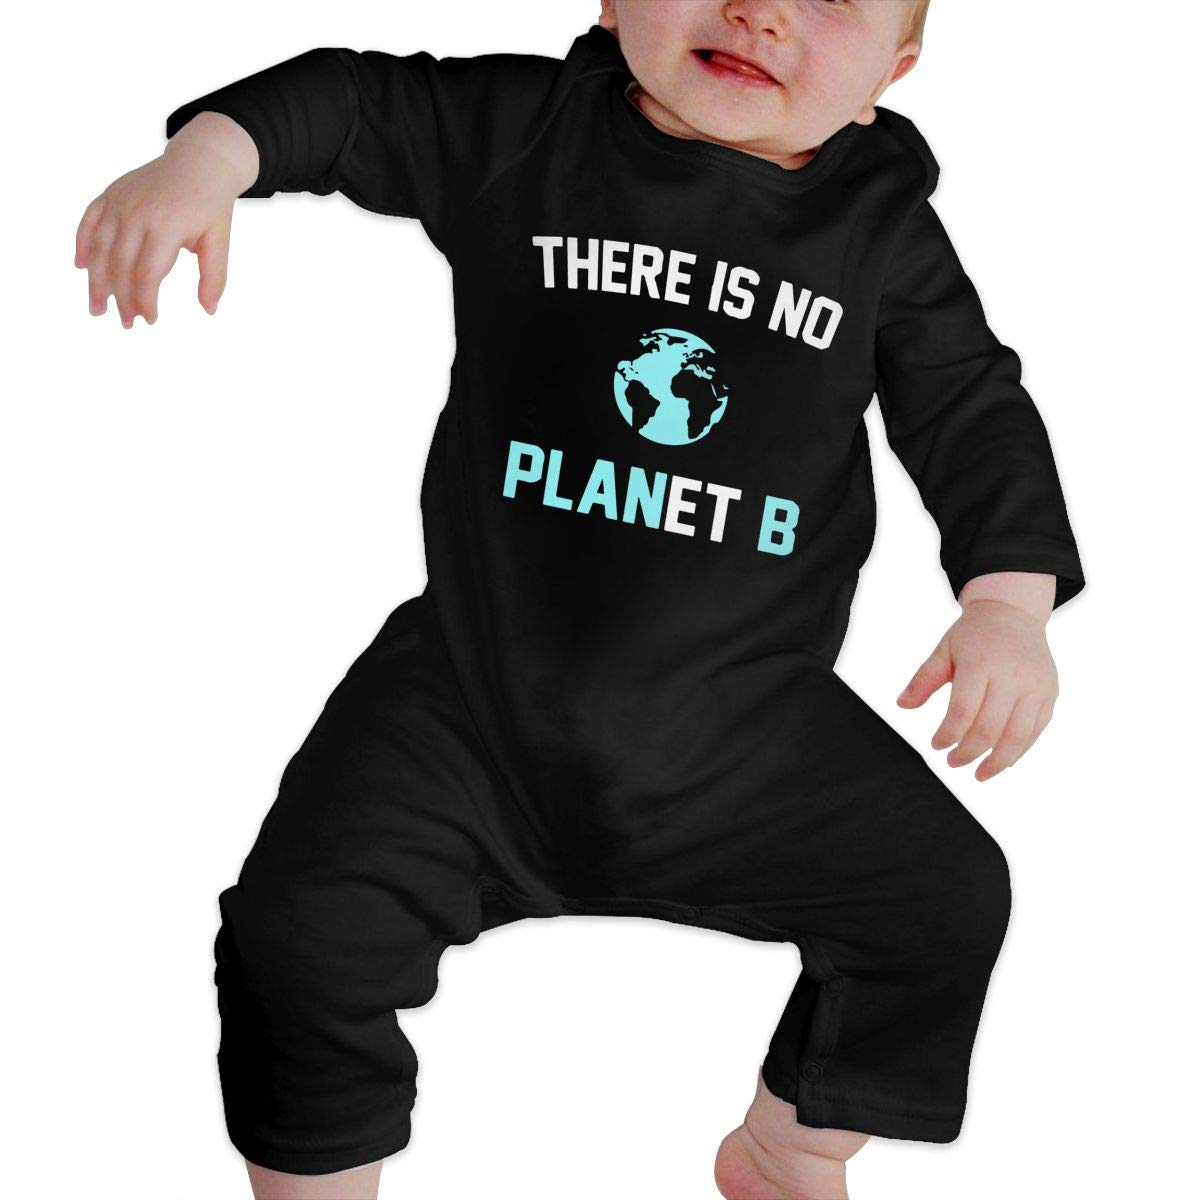 Suit 6-24 Months Baby Girls Round Collar There is No Planet B Long Sleeve Playsuit 100/% Cotton